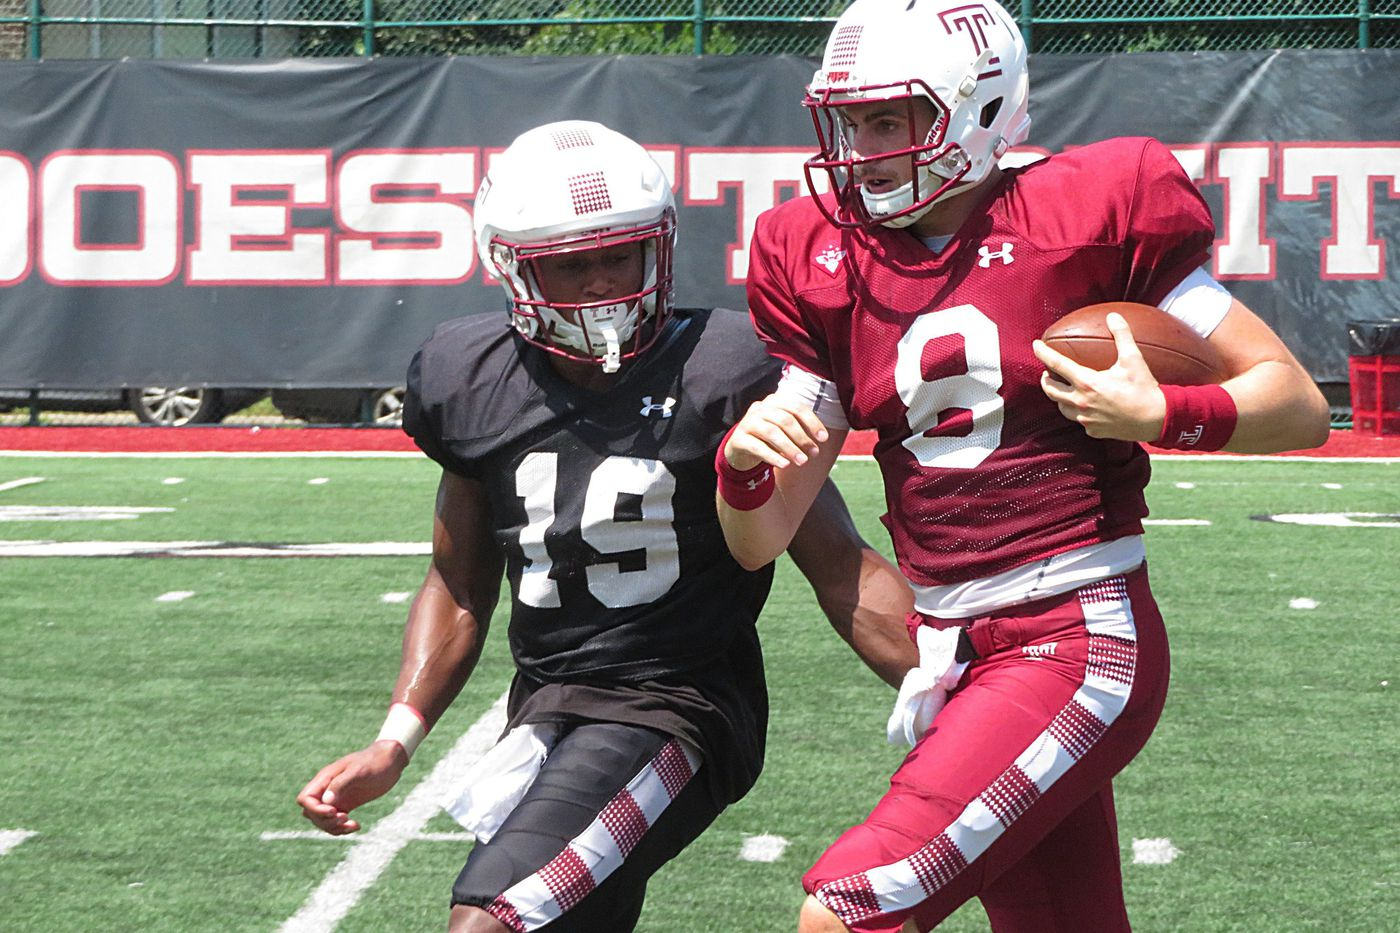 Temple football training camp notes: A big day for WR Branden Mack, plus OL update